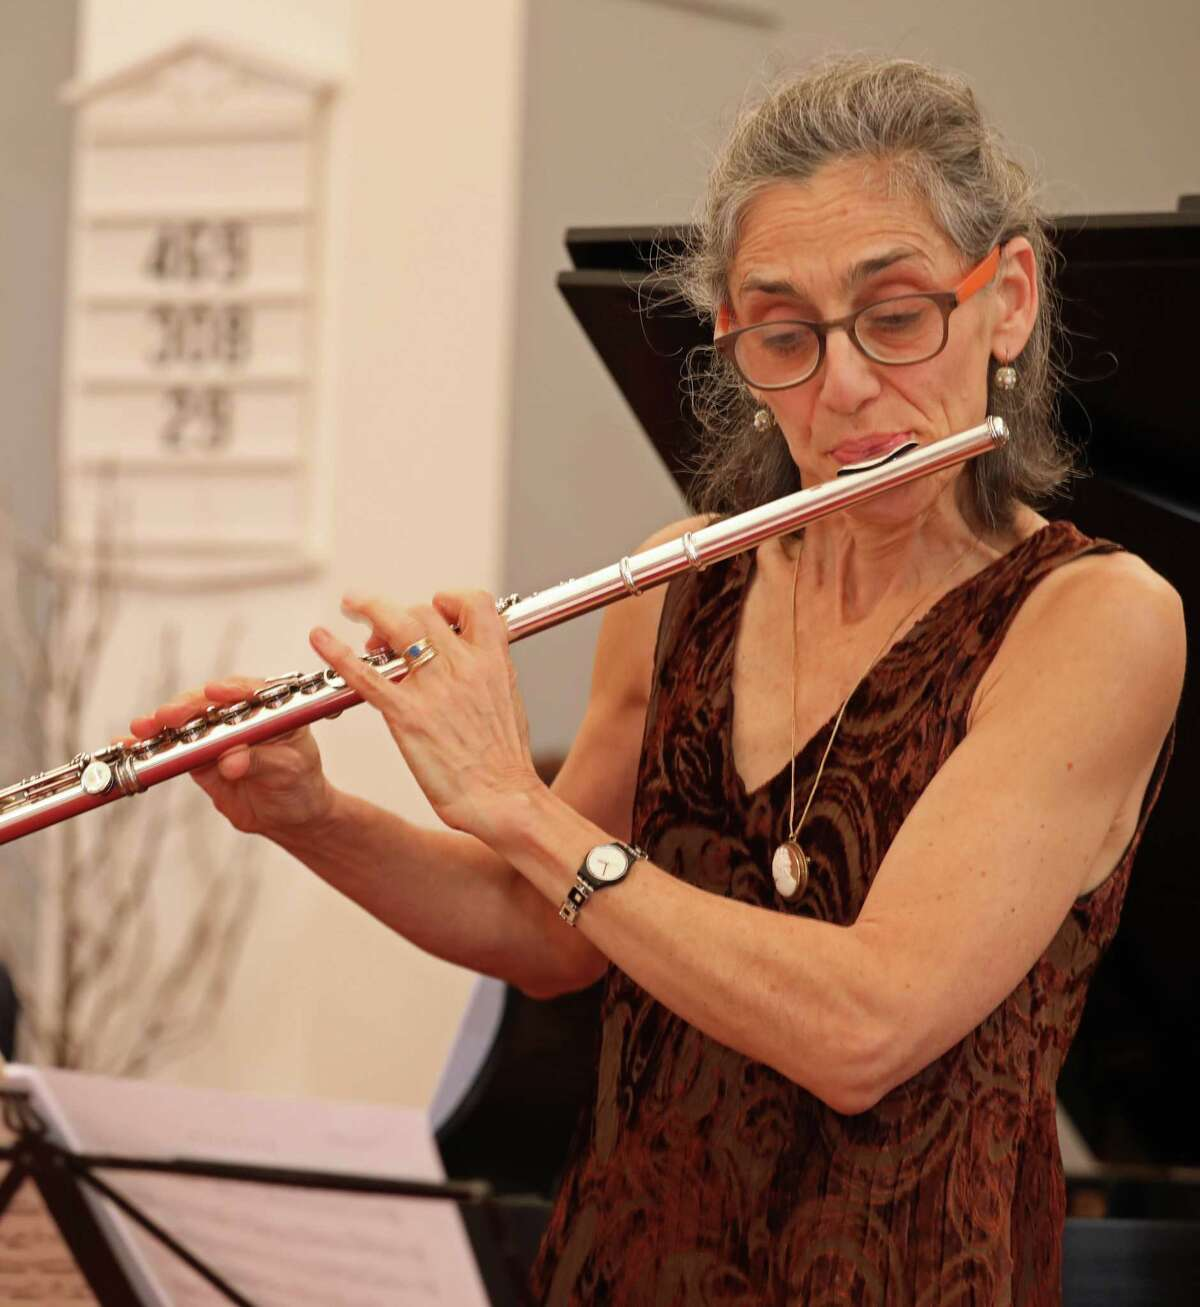 """Performers for the Sherman Chamber Ensemble """"Best of Baroque"""" concerts Jan. 4 and 5 are SCE Artistic Director and cellist Eliot Bailen, Susan Rotholz, pictured, (flute), Gerard Reuter (oboe), Michael Roth (violin) and Raymond Erickson (piano)."""